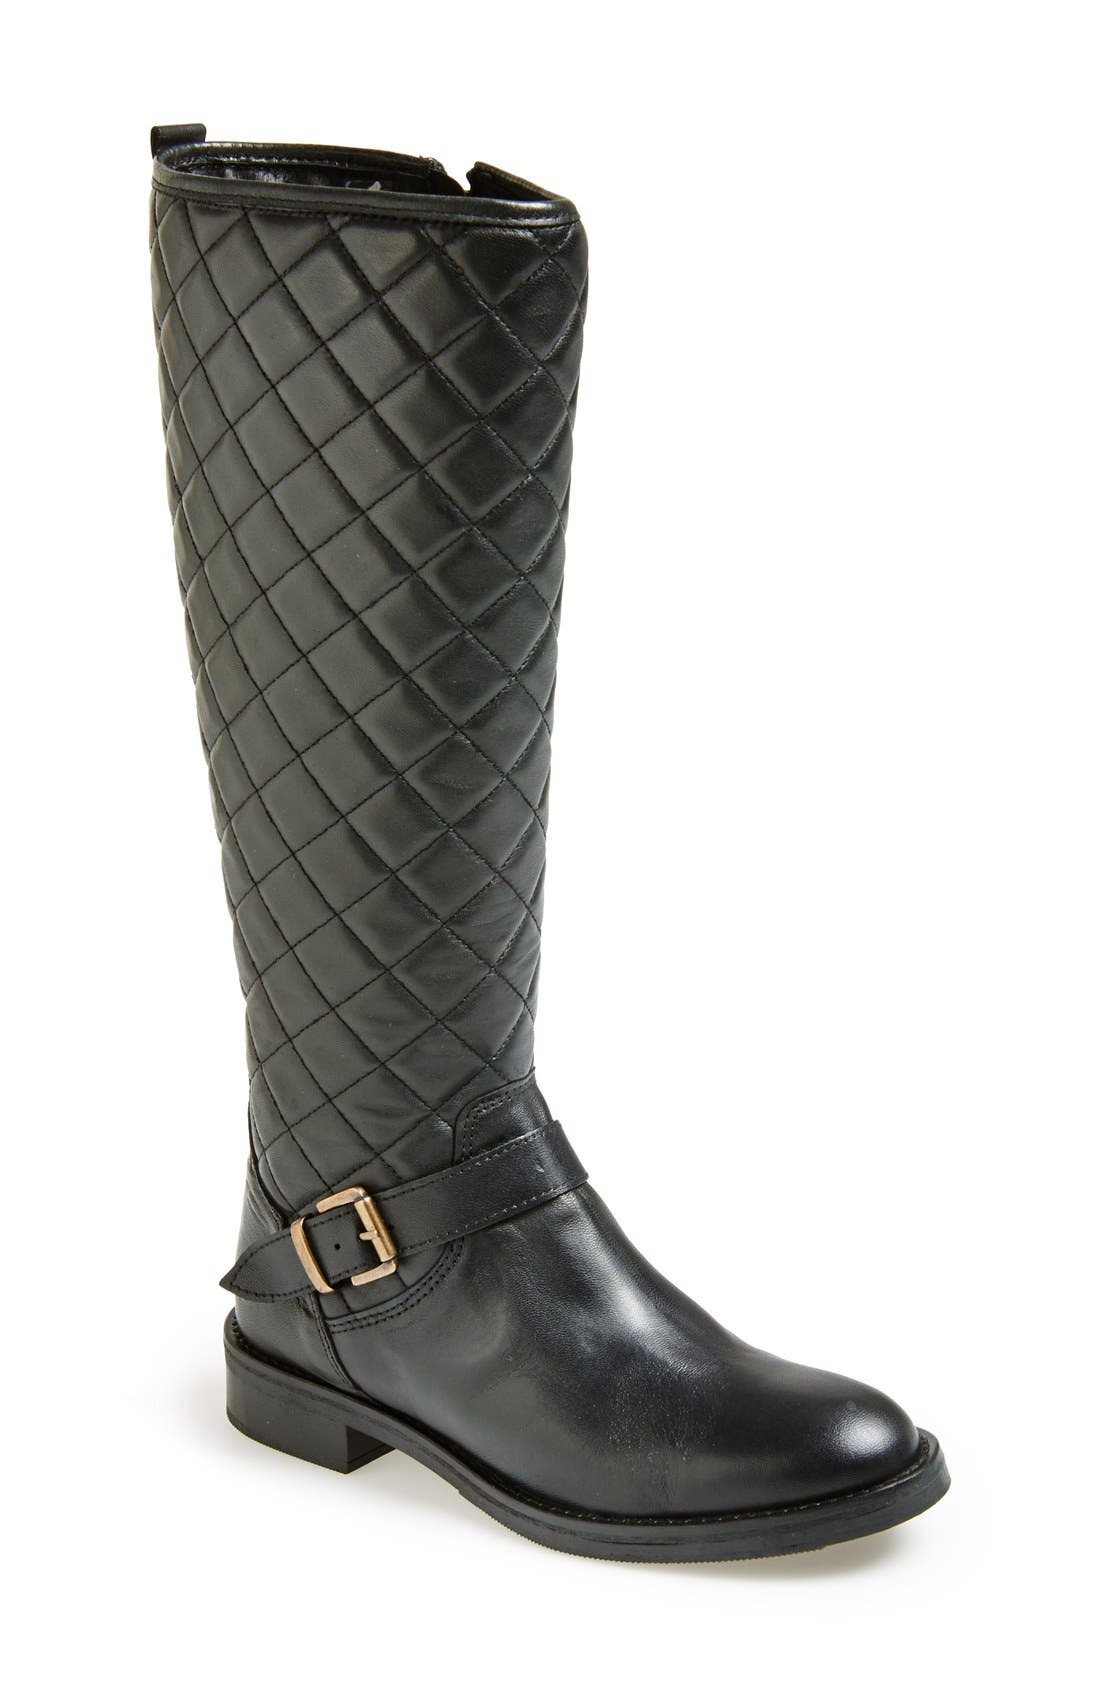 Alternate Image 1 Selected - BRONX USA 'Mill Ford' Tall Boot (Women)